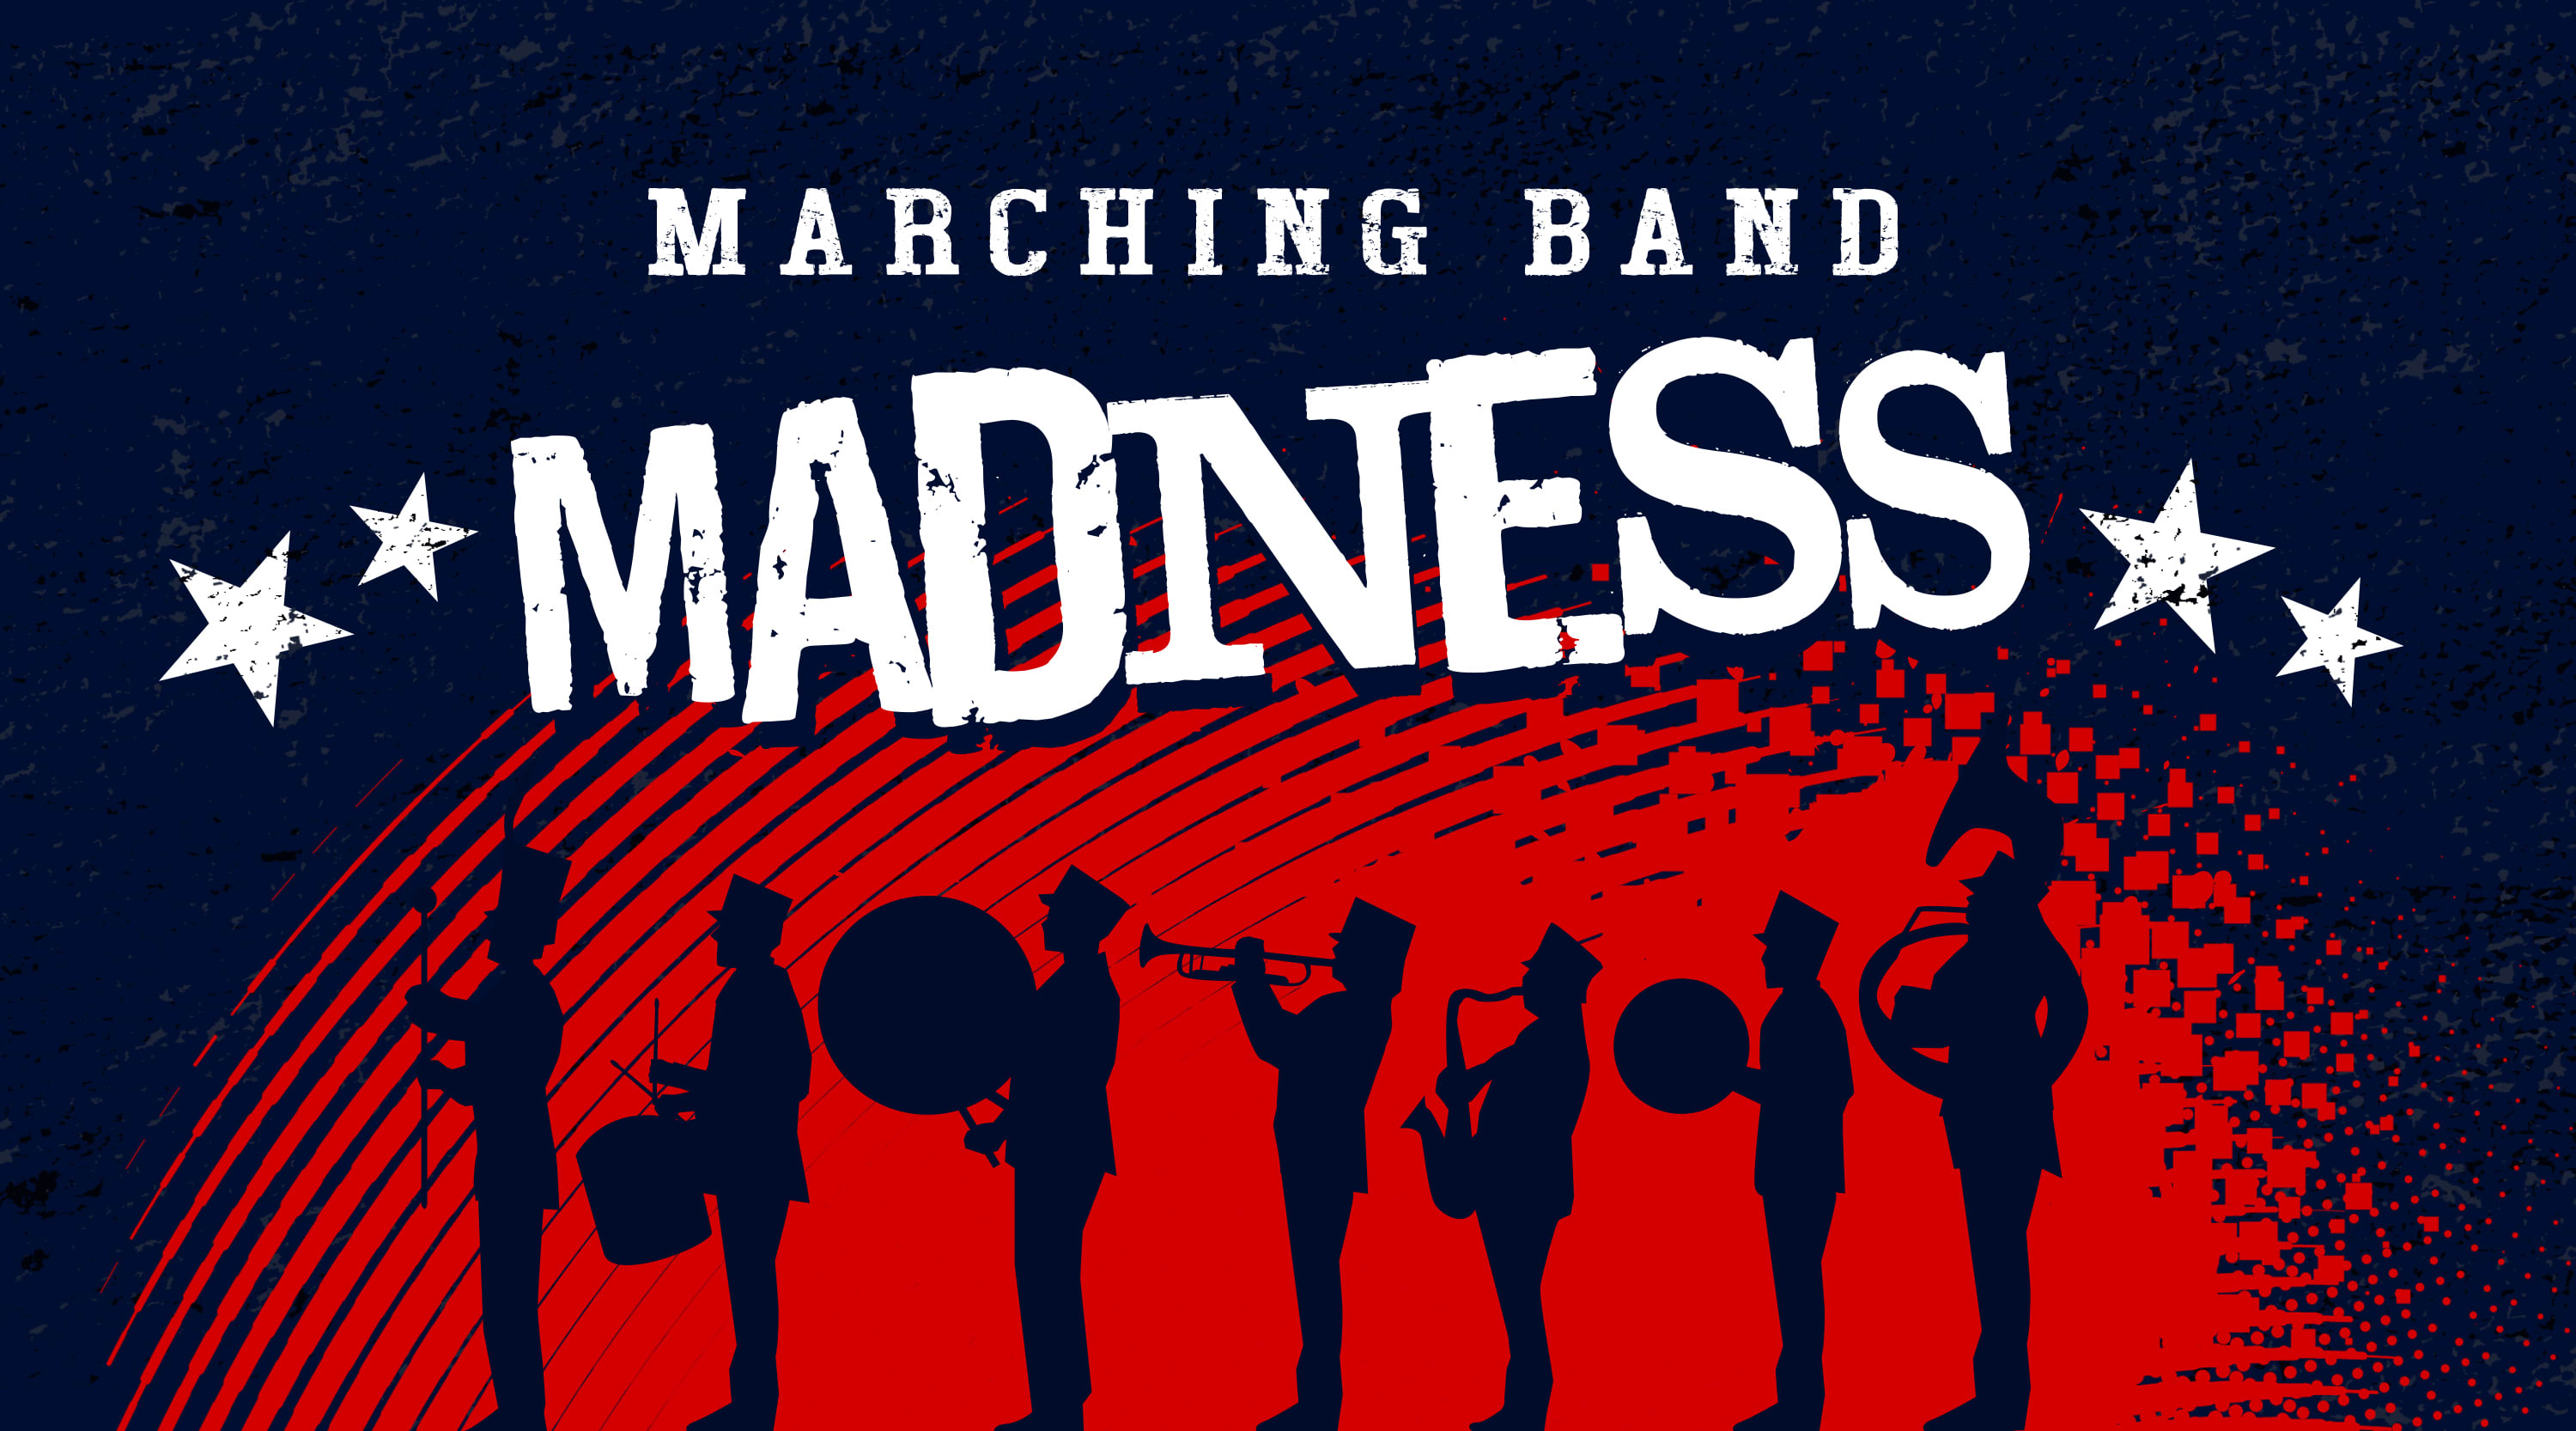 Marching Band Madness